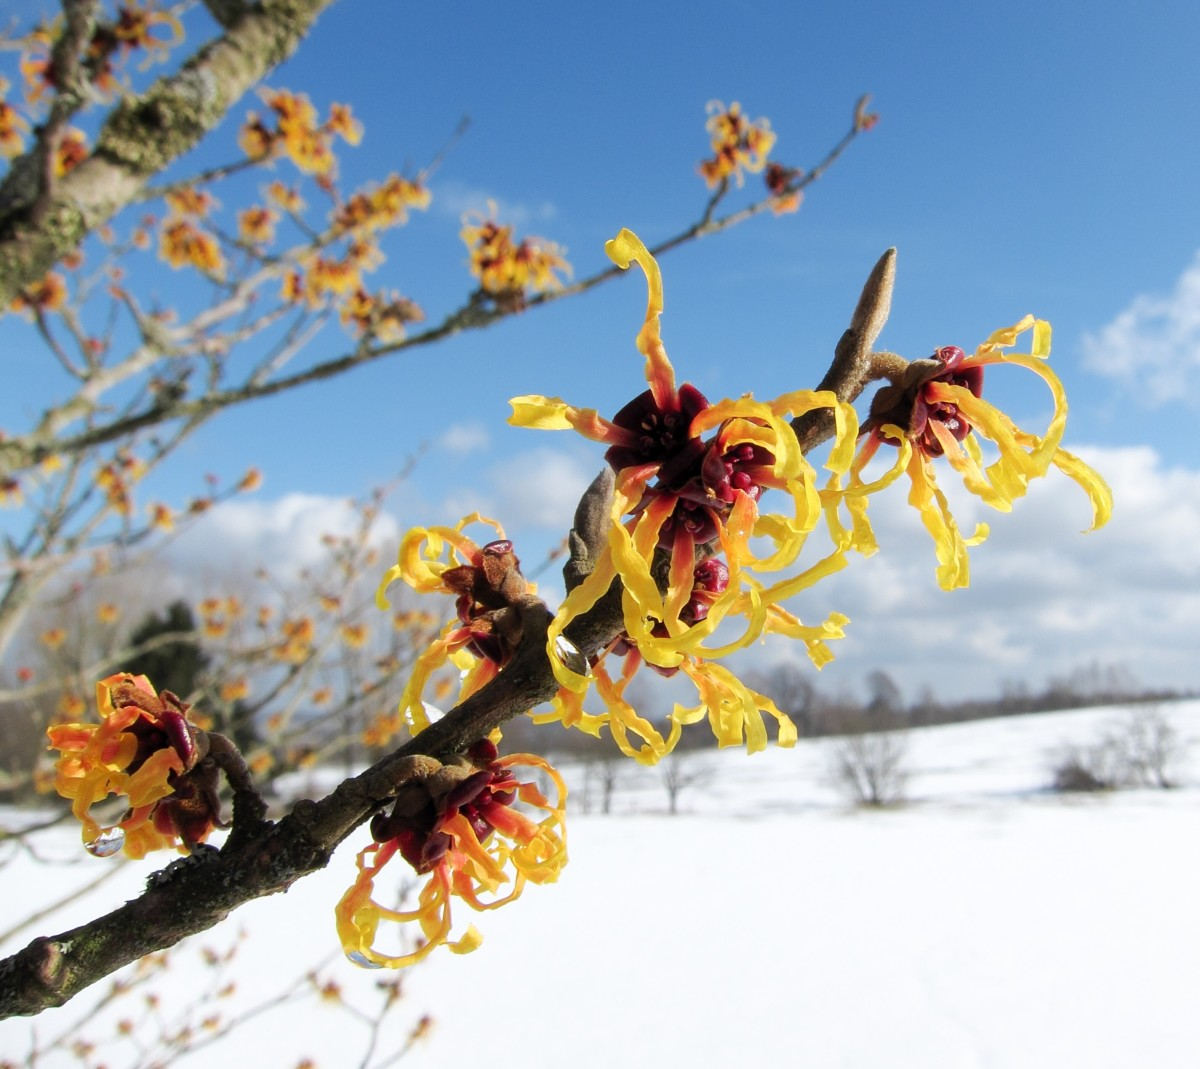 Witch hazel flowers in the winter